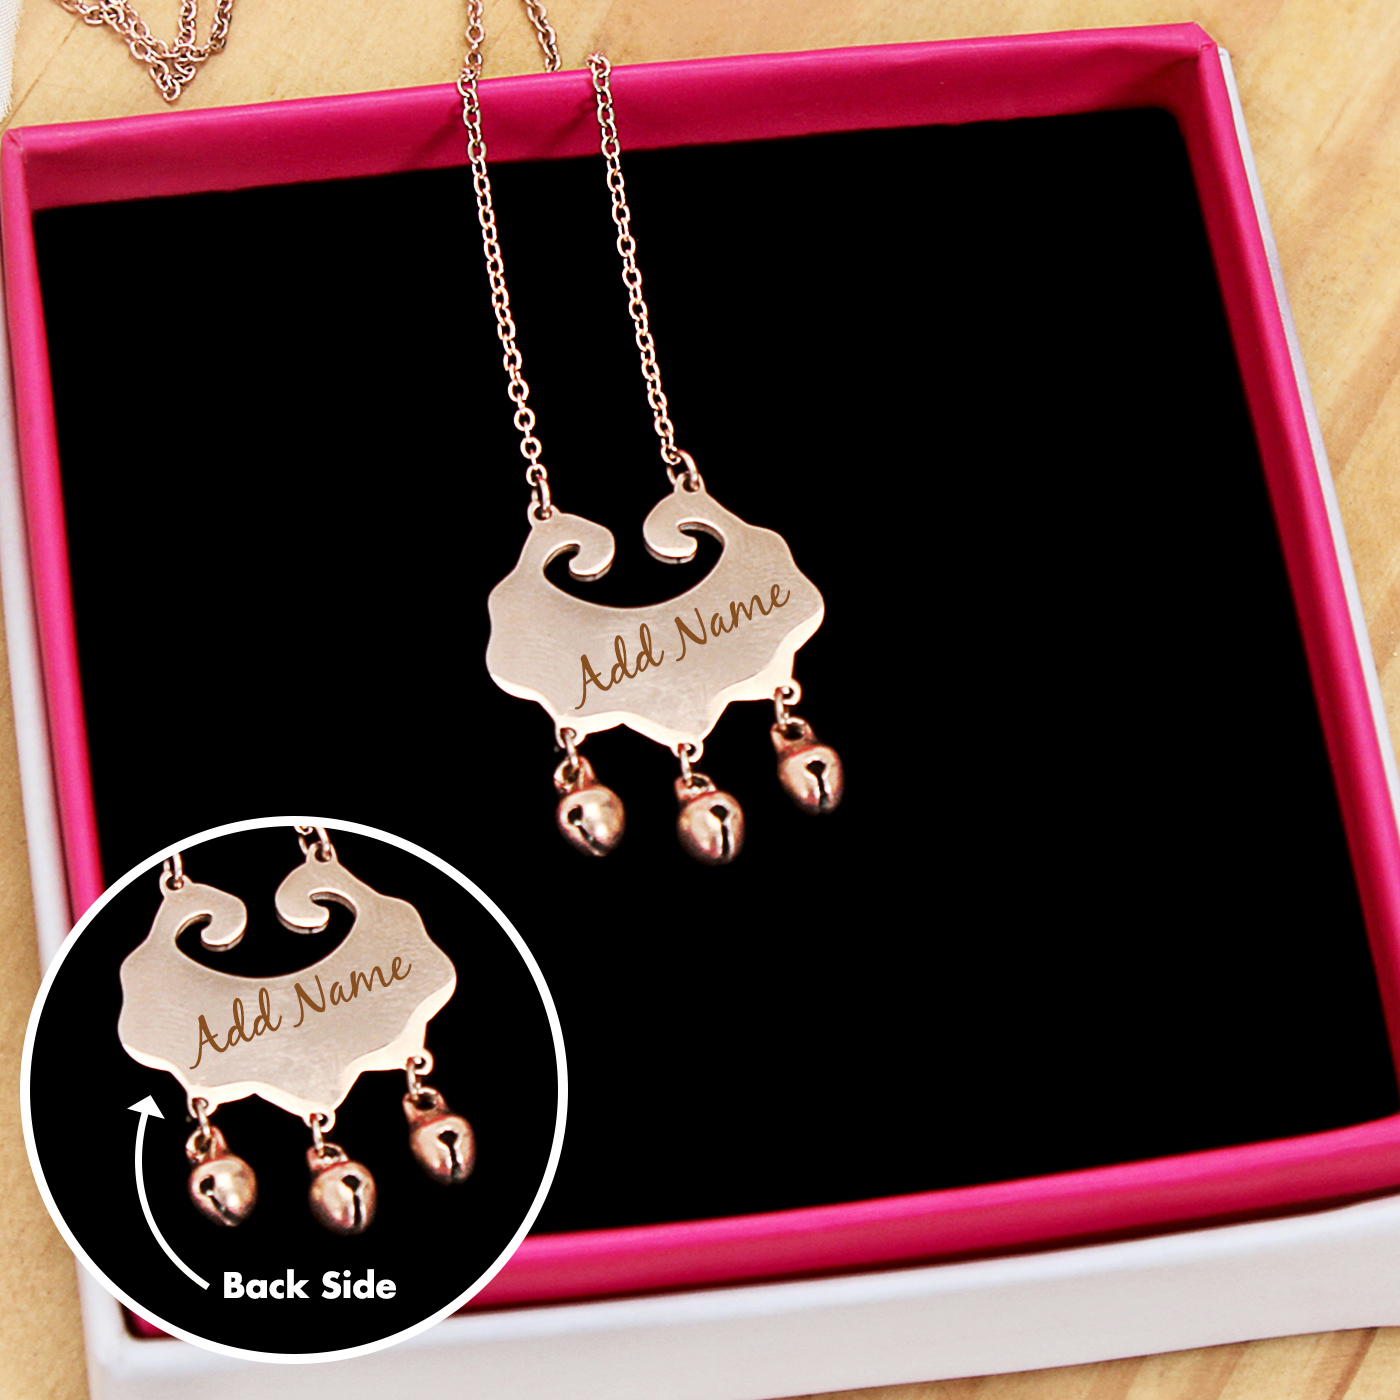 Personalized Ghungru Necklace